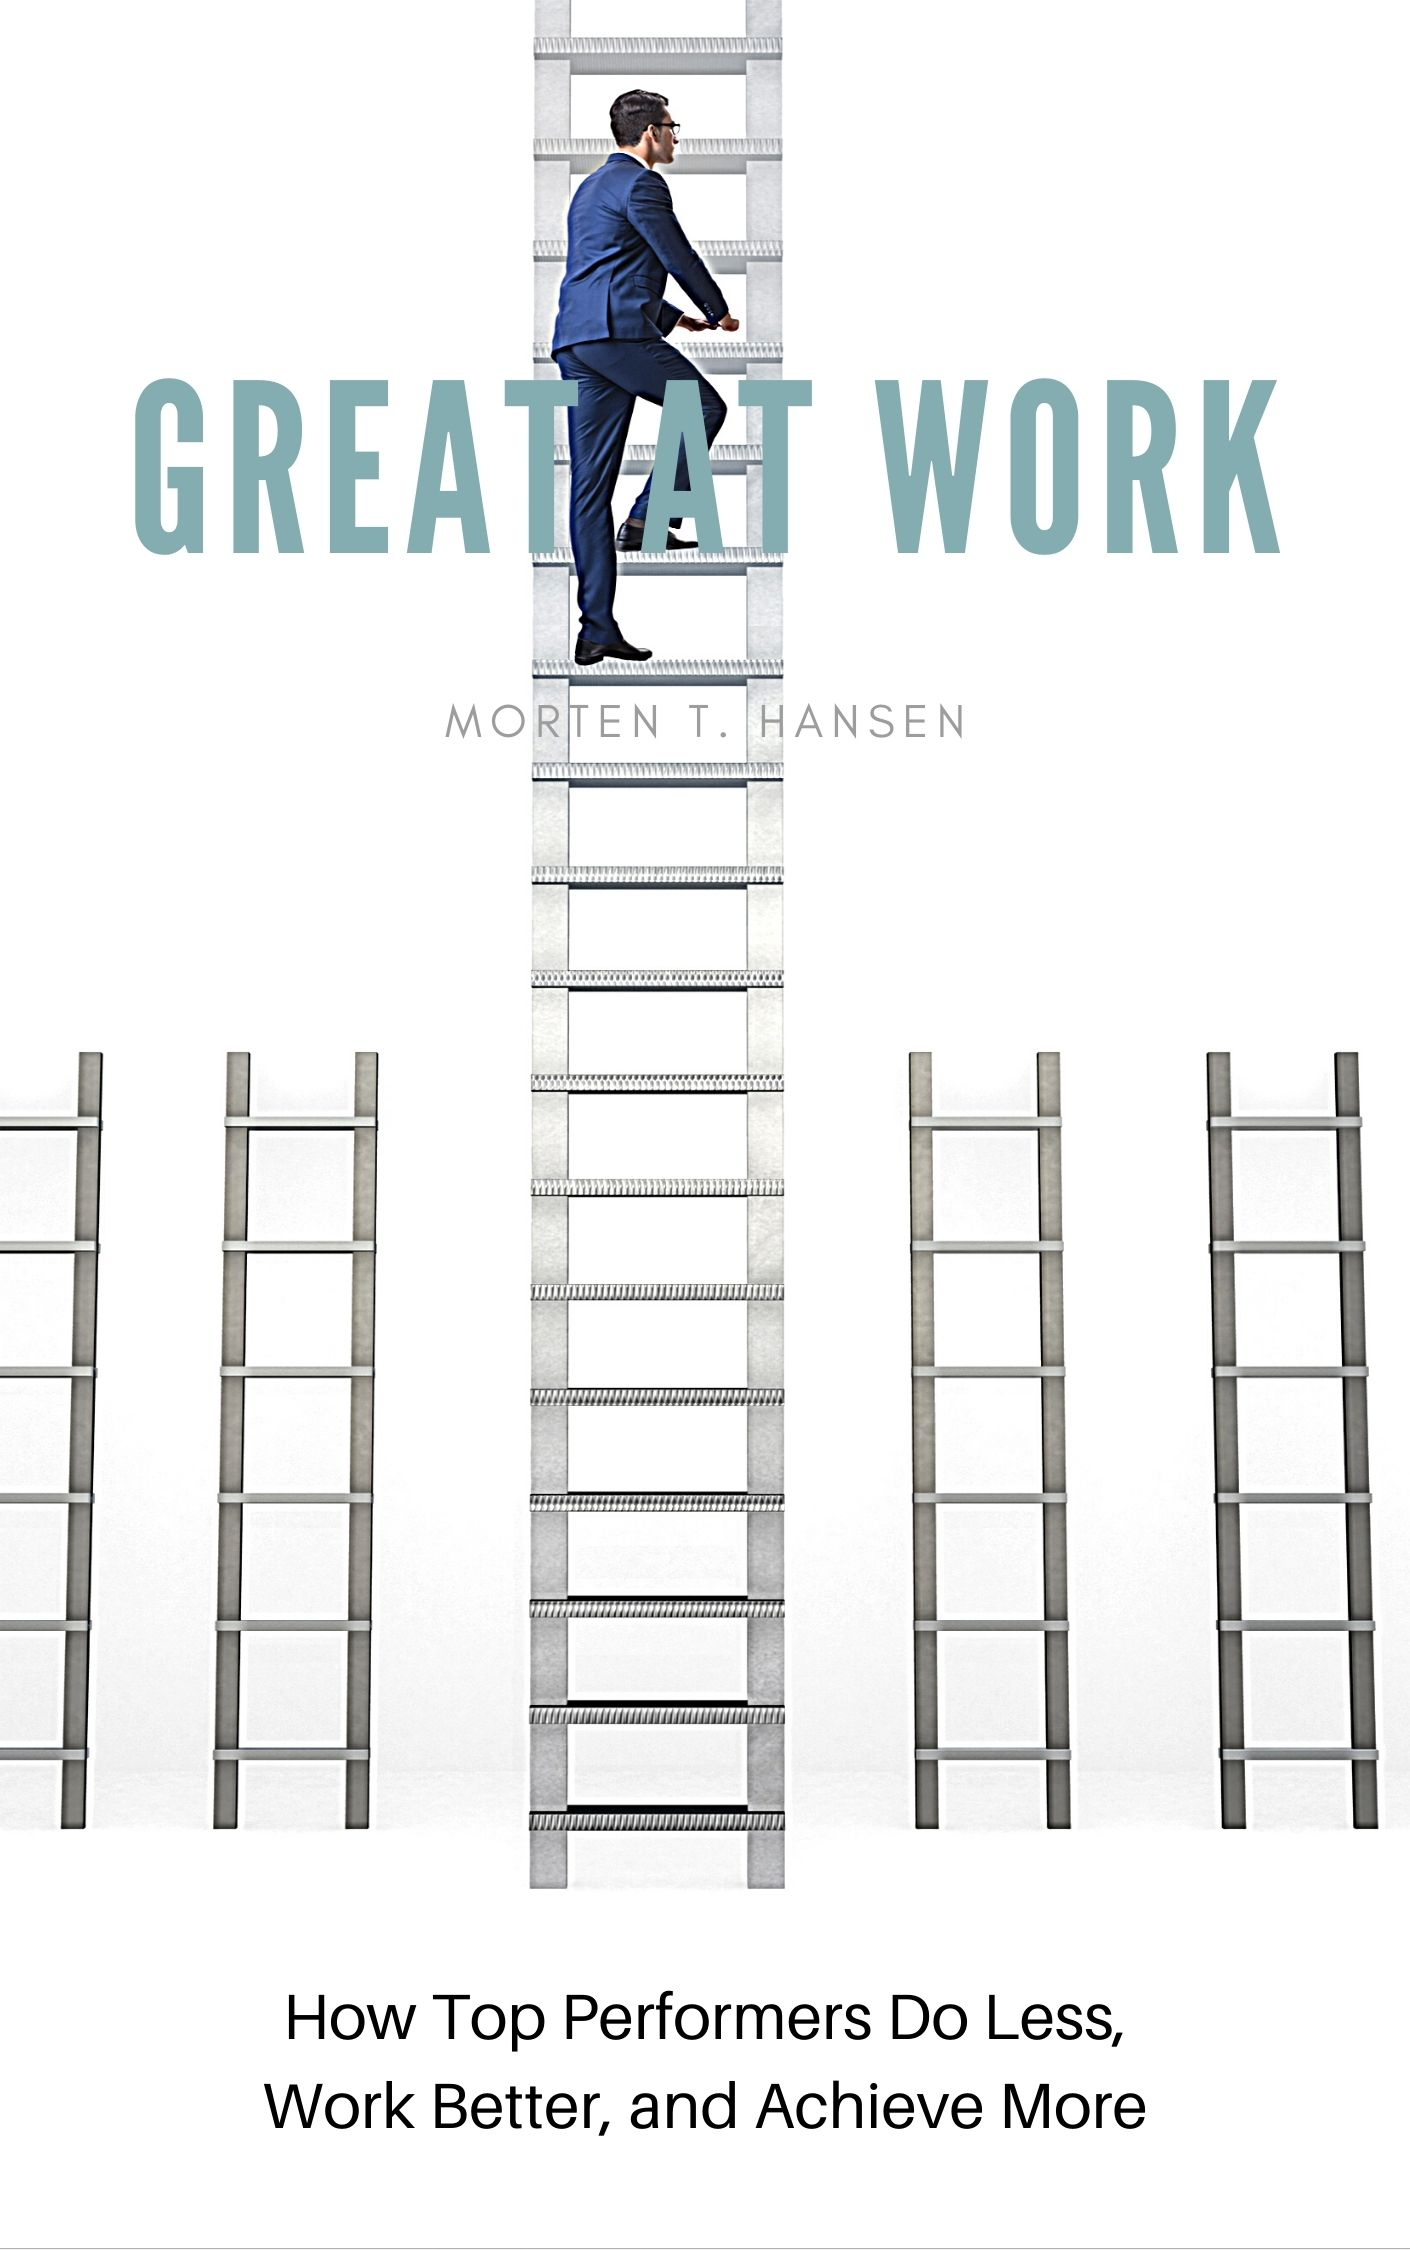 book summary - Great at Work by Morten T. Hansen